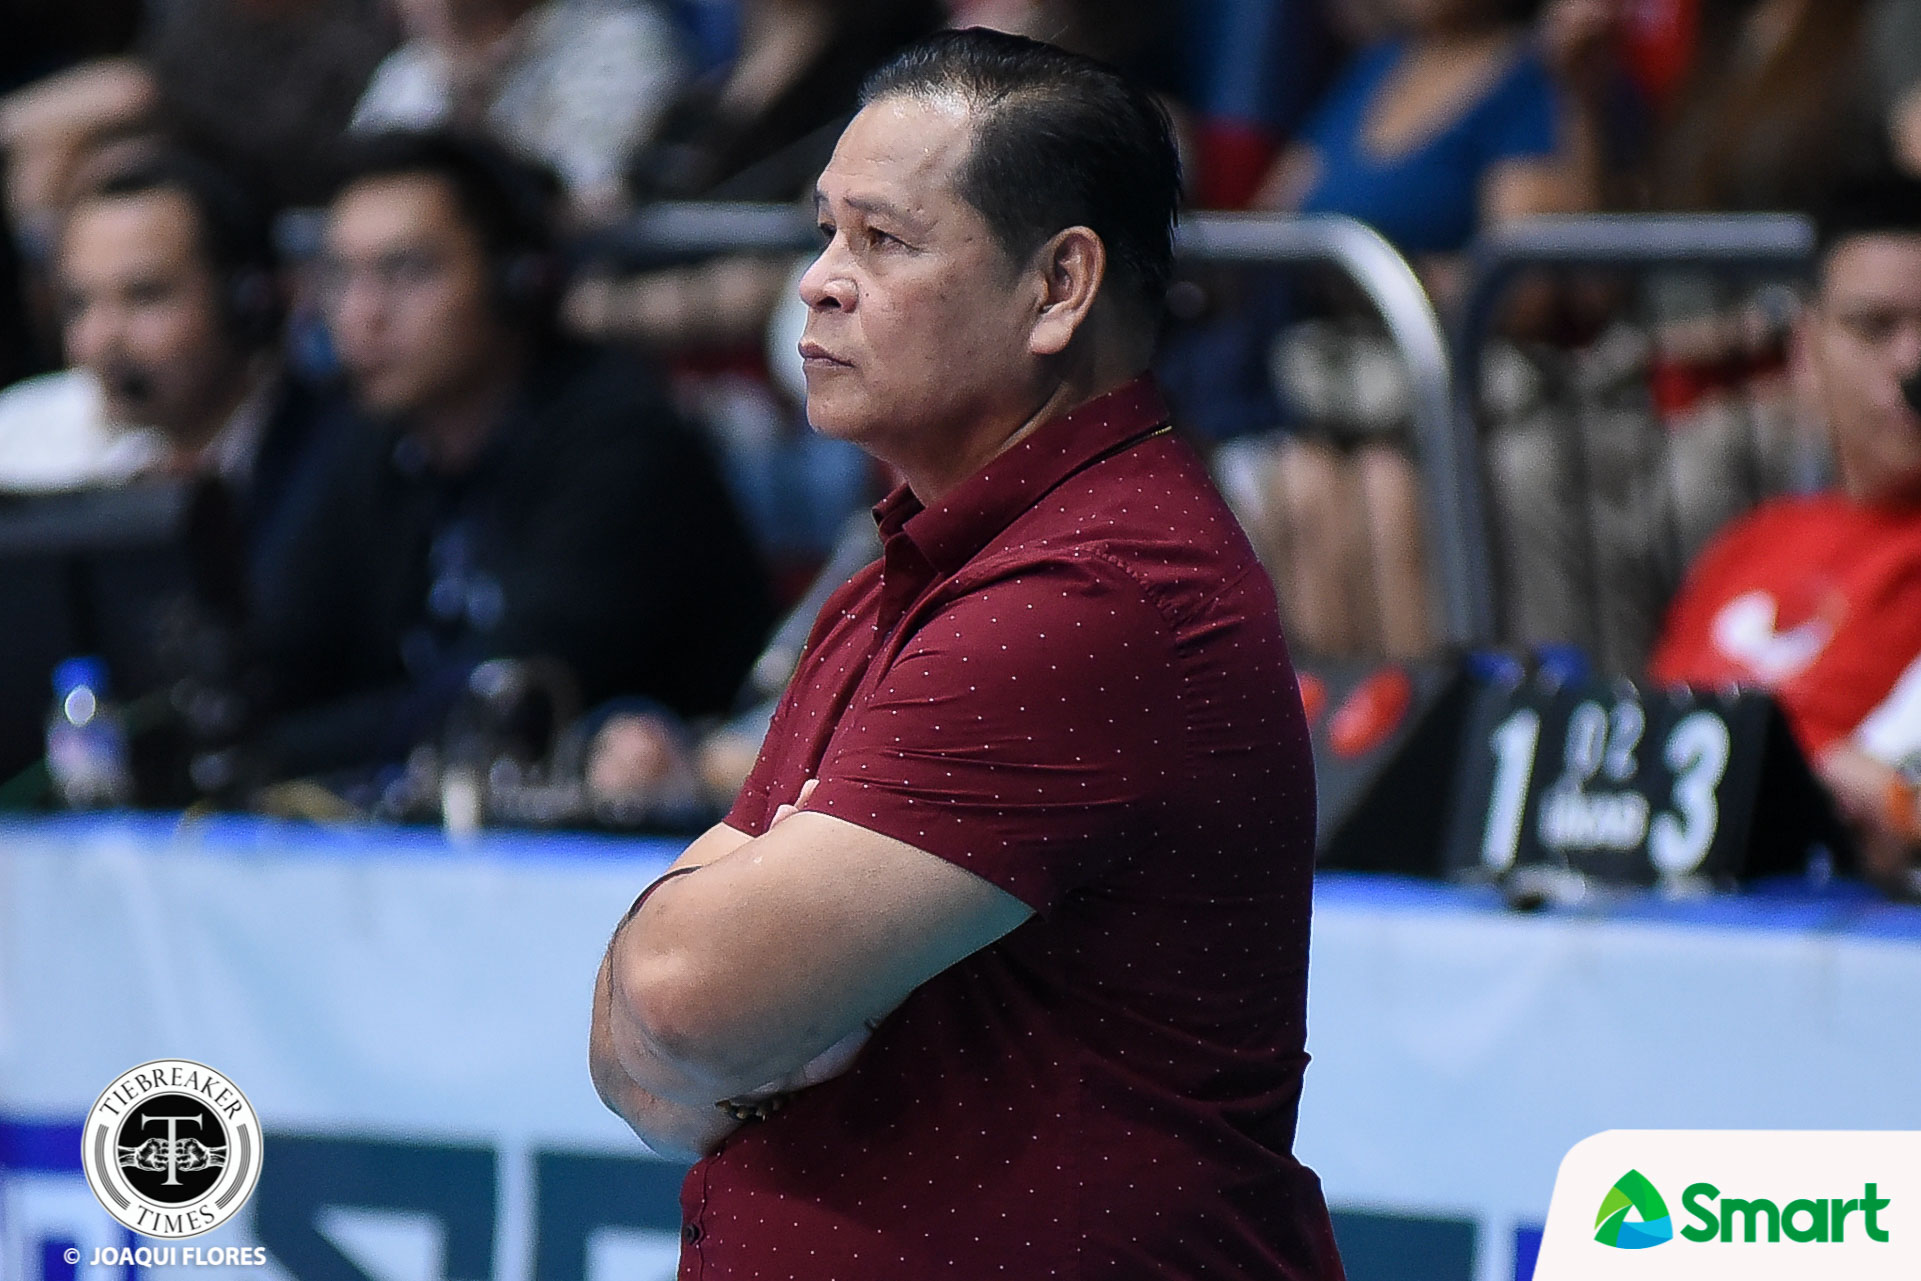 Tiebreaker Times Sammy Acaylar snaps complacent Altas back to form NCAA News UPHSD Volleyball  Warren Catipay Sammy Acaylar Perpetual Men's Volleyball NCAA Season 93 Men's Volleyball NCAA Season 93